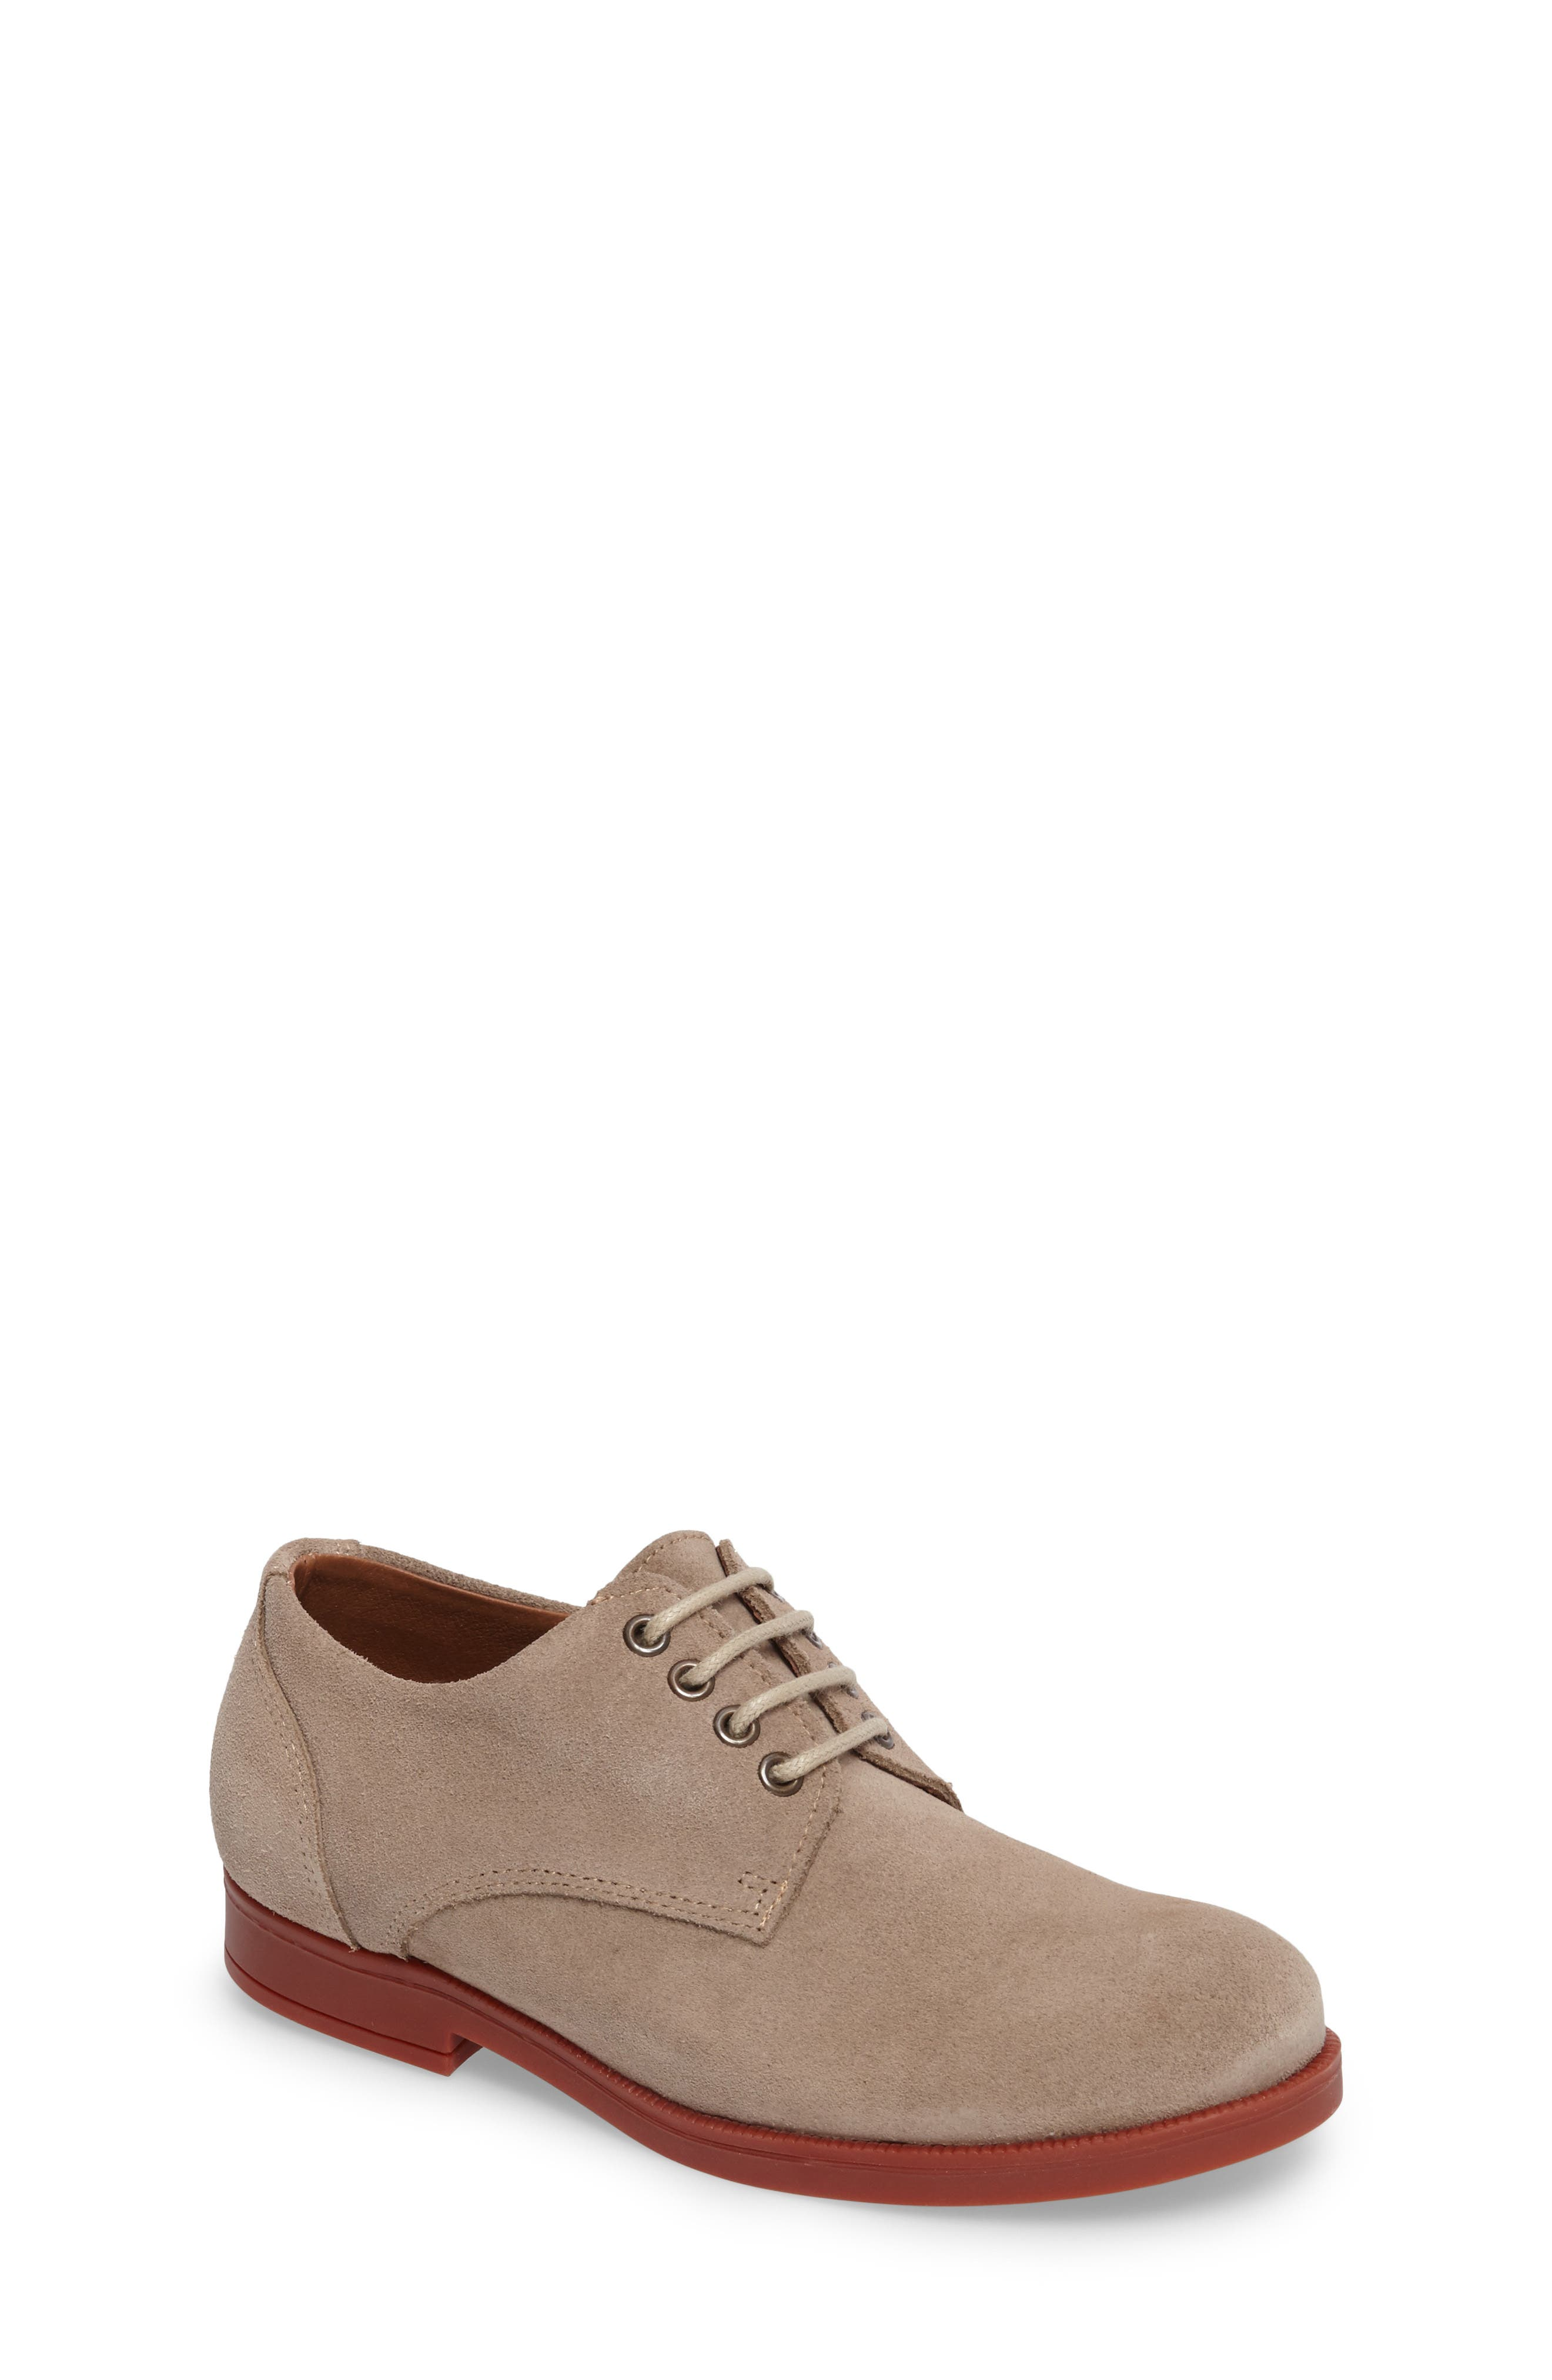 Vince Camuto Kalb Plain Toe Oxford (Toddler, Little Kid & Big Kid)